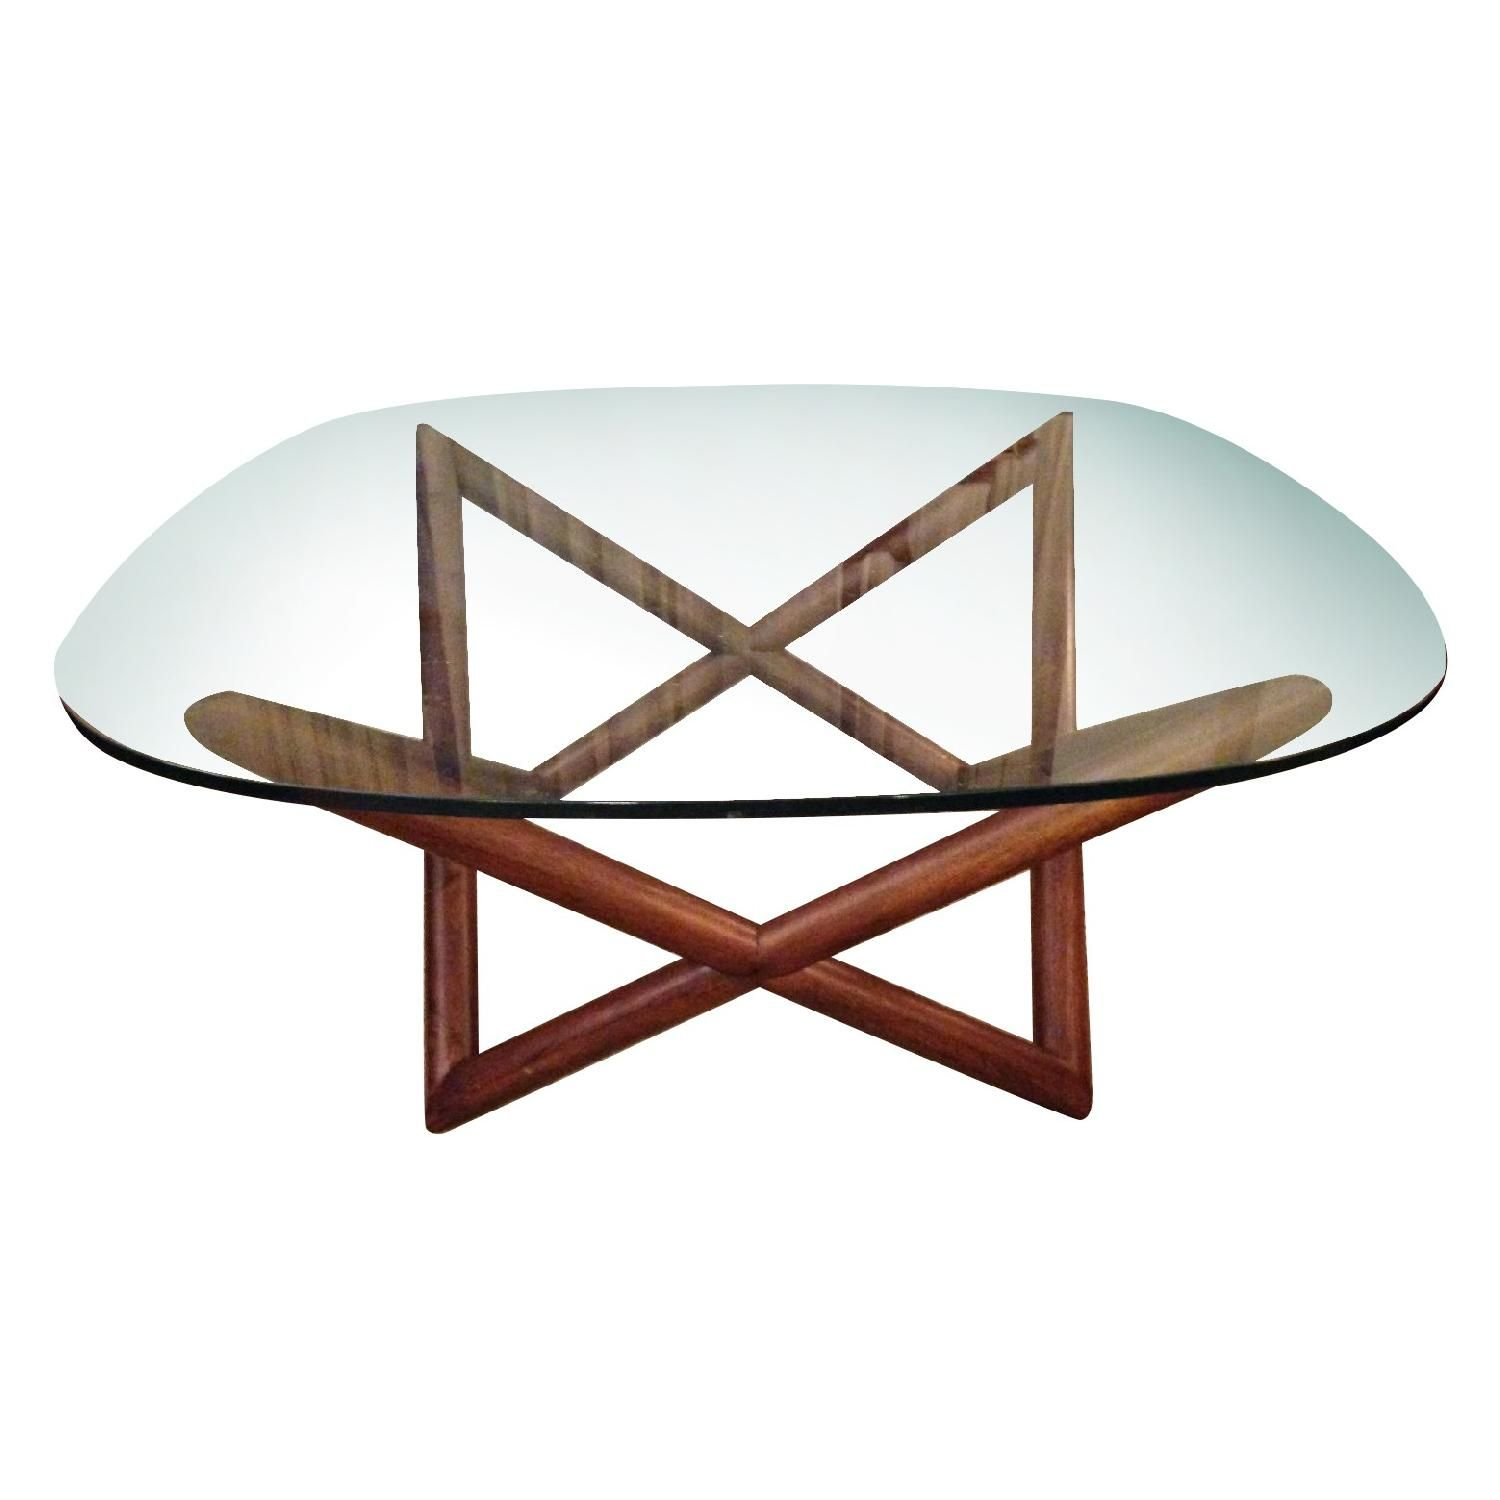 This Is A West Elm Spindle Coffee Table For Glass And Wood - West elm spindle coffee table